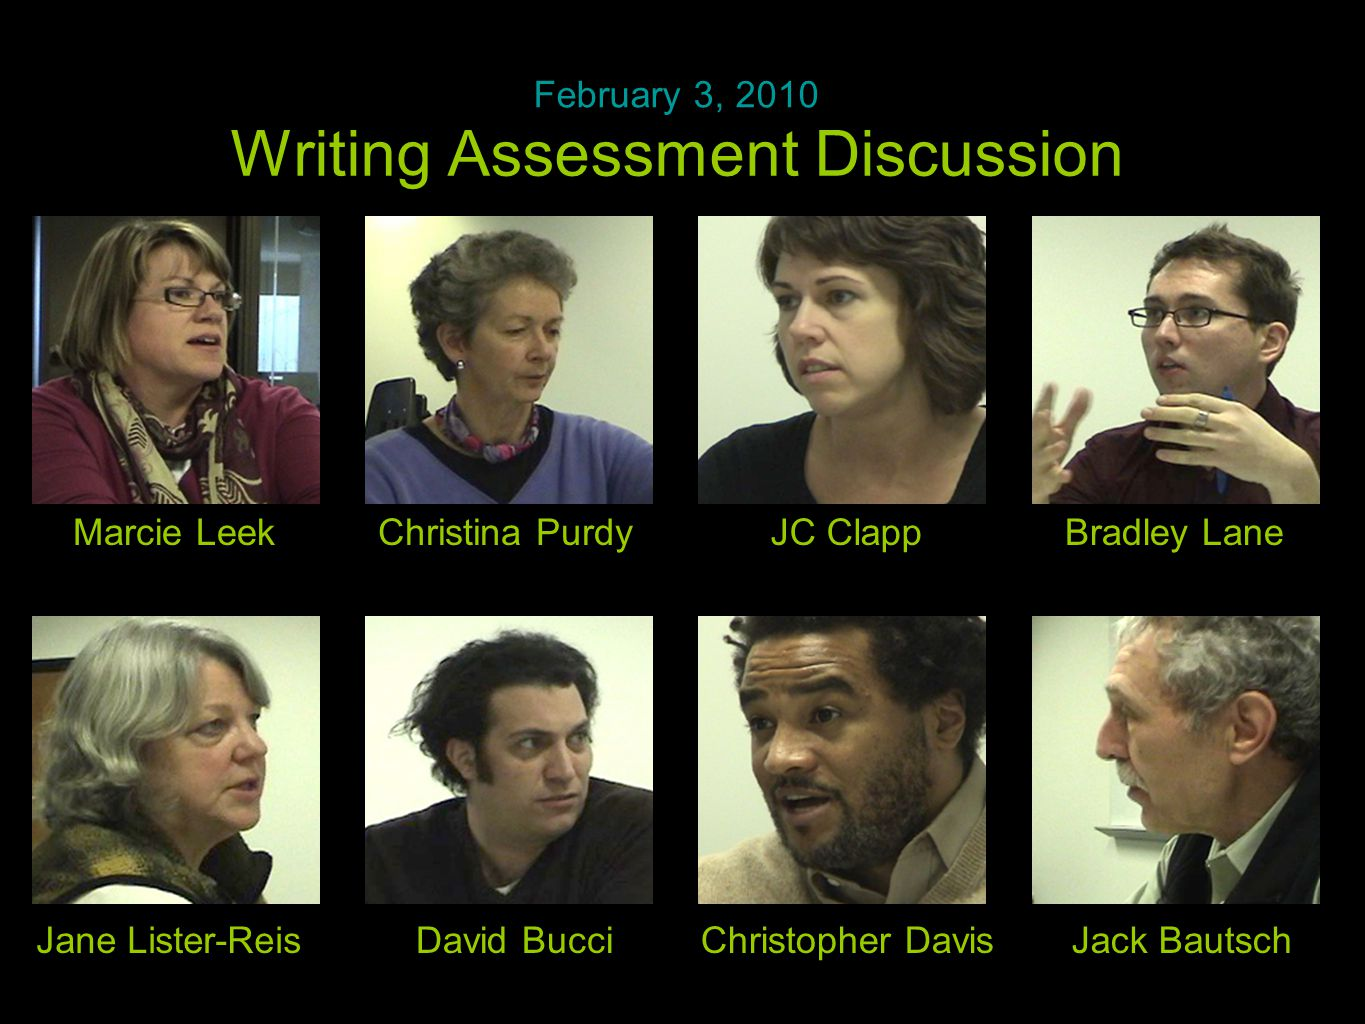 Time to talk Writing Assessment Discussion February 3, 2010